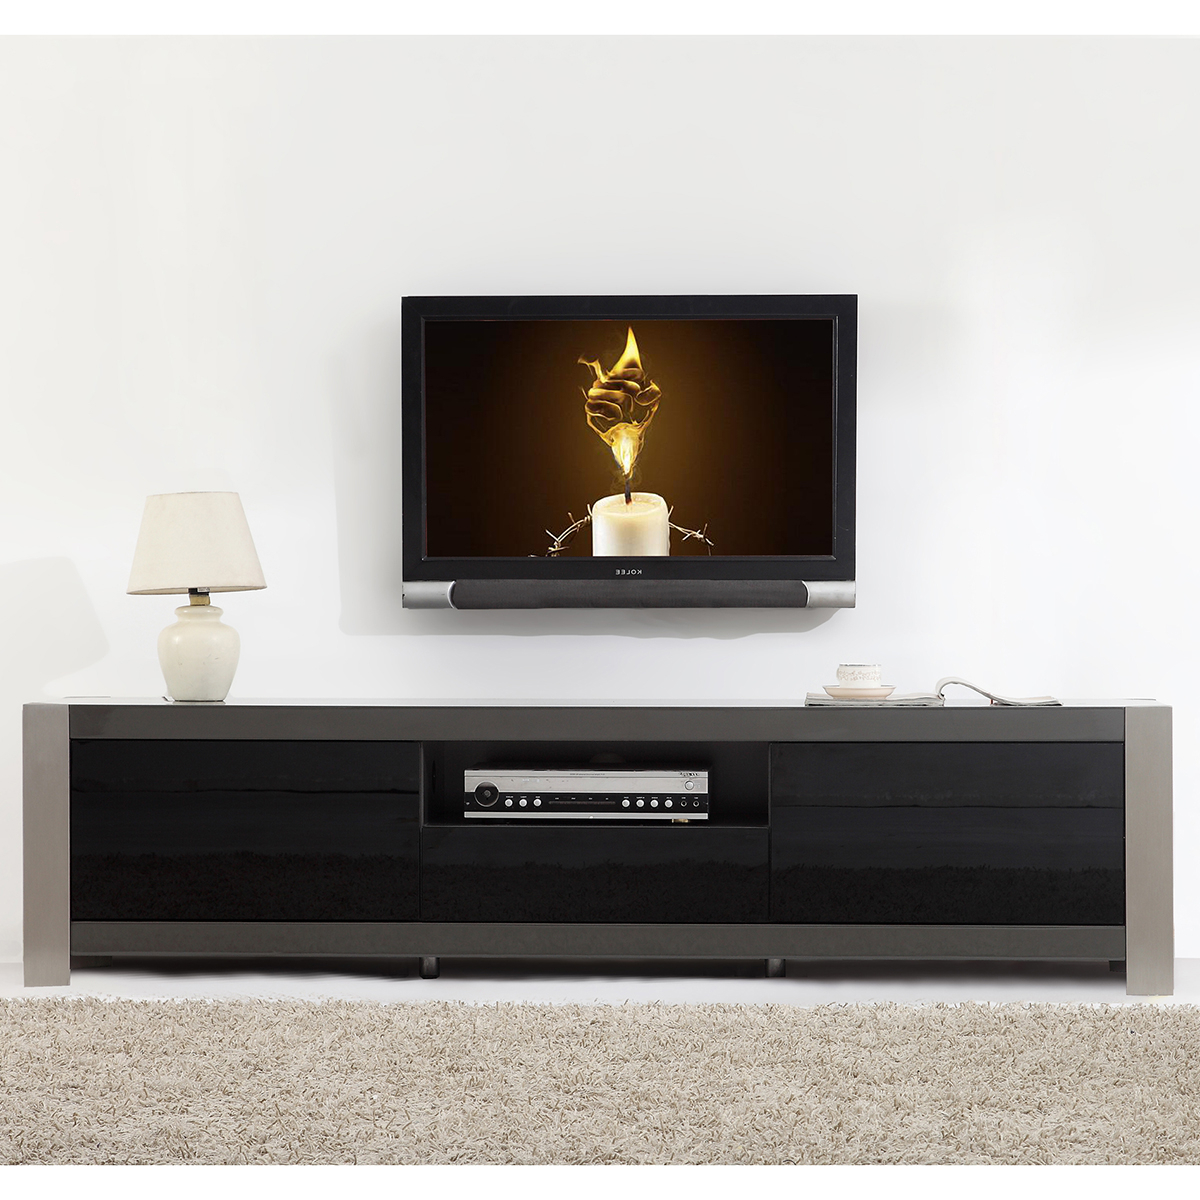 Newest Modern Tv Stand With Electric Fireplace Black For Sale Stands Uk With Regard To Walnut And Black Gloss Tv Units (View 10 of 20)